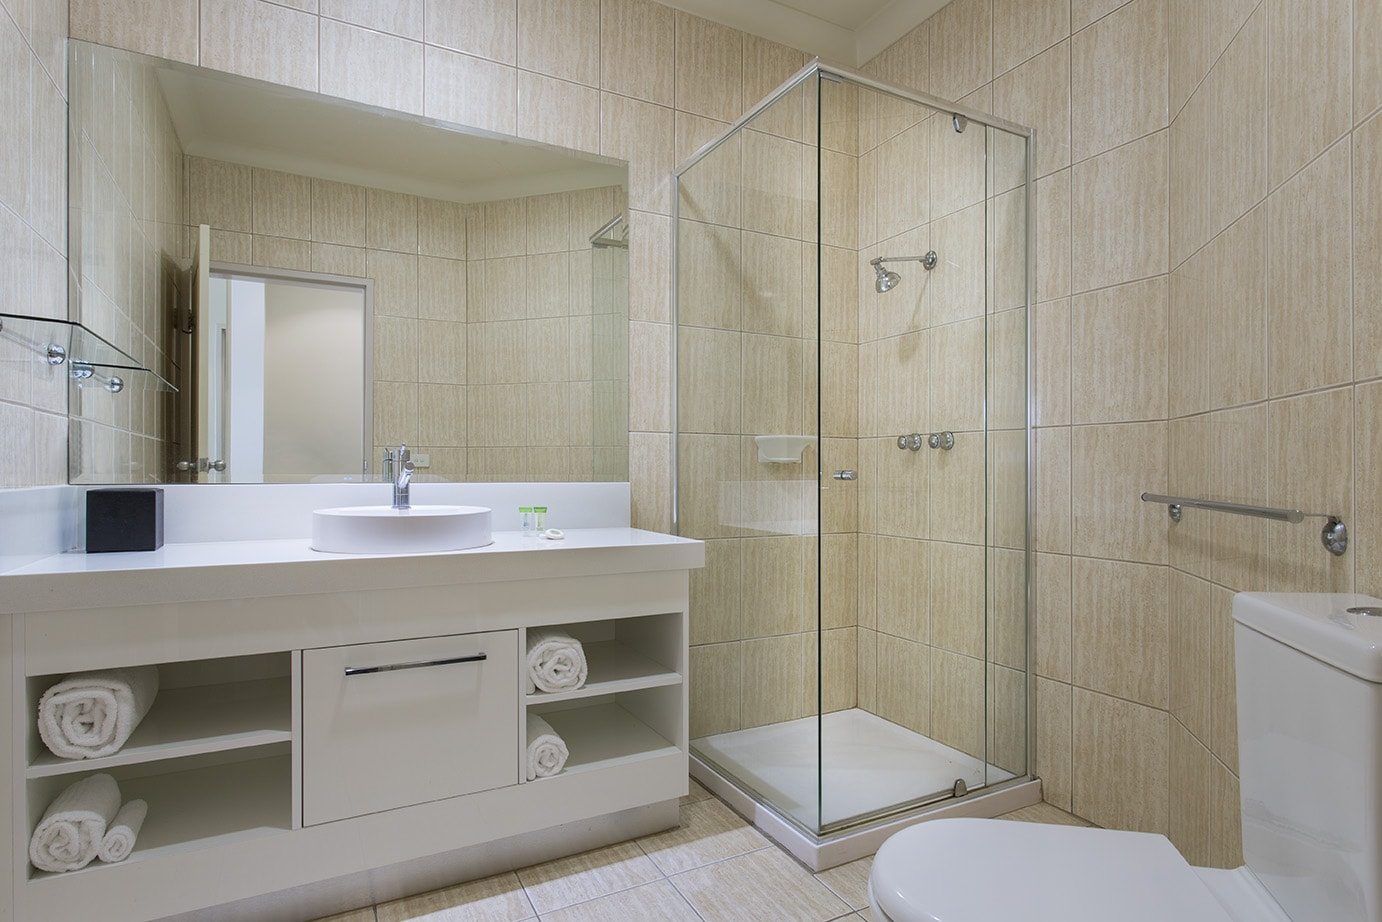 best-western-plus-the-carrington-shepparton-hotel-accommodation-executive-suite-4.jpg